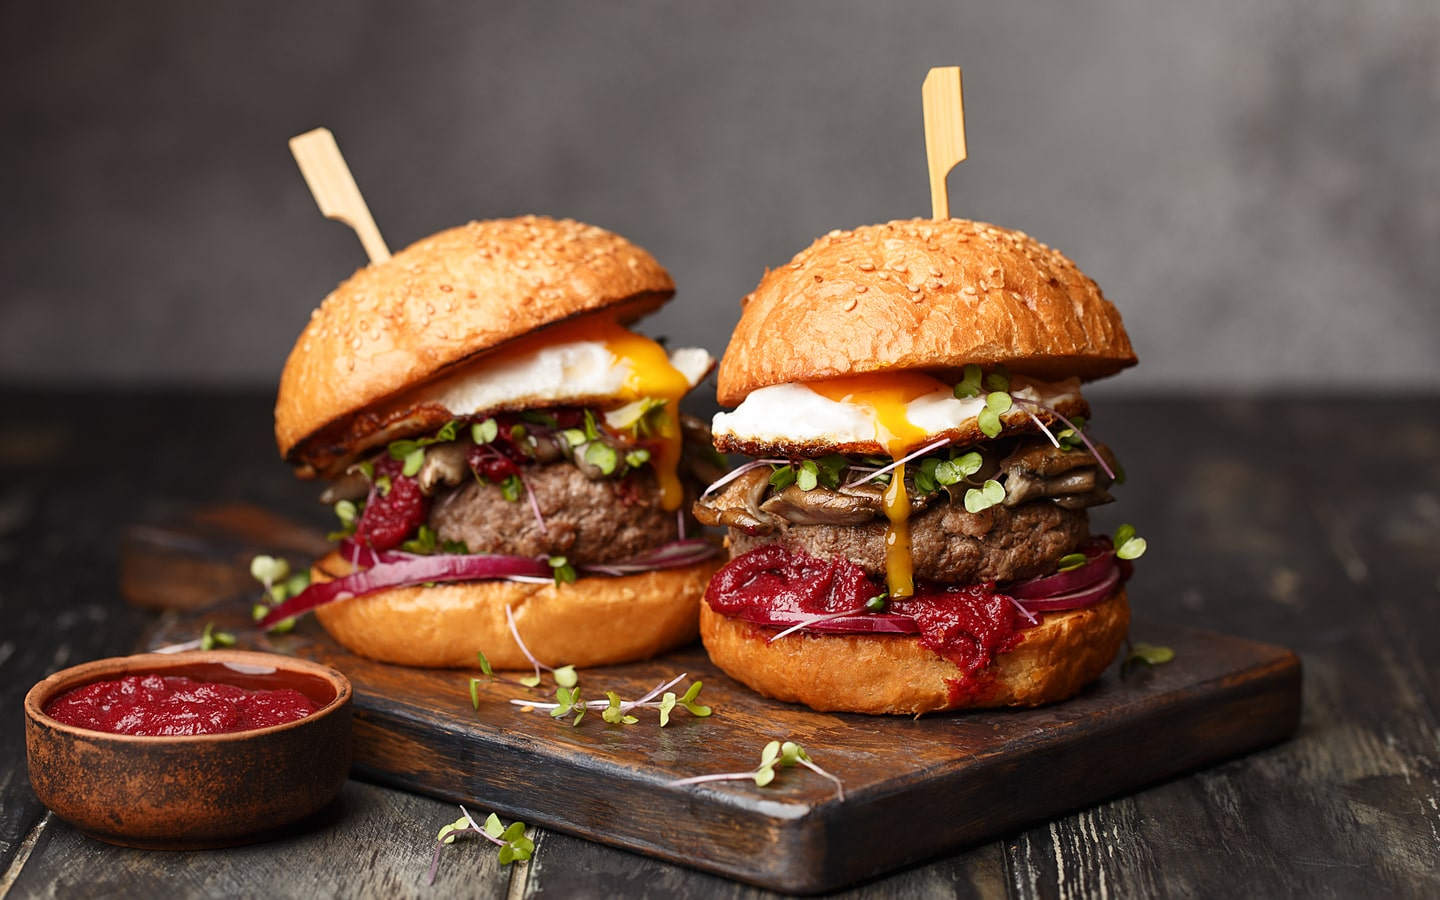 Image of two beef burgers